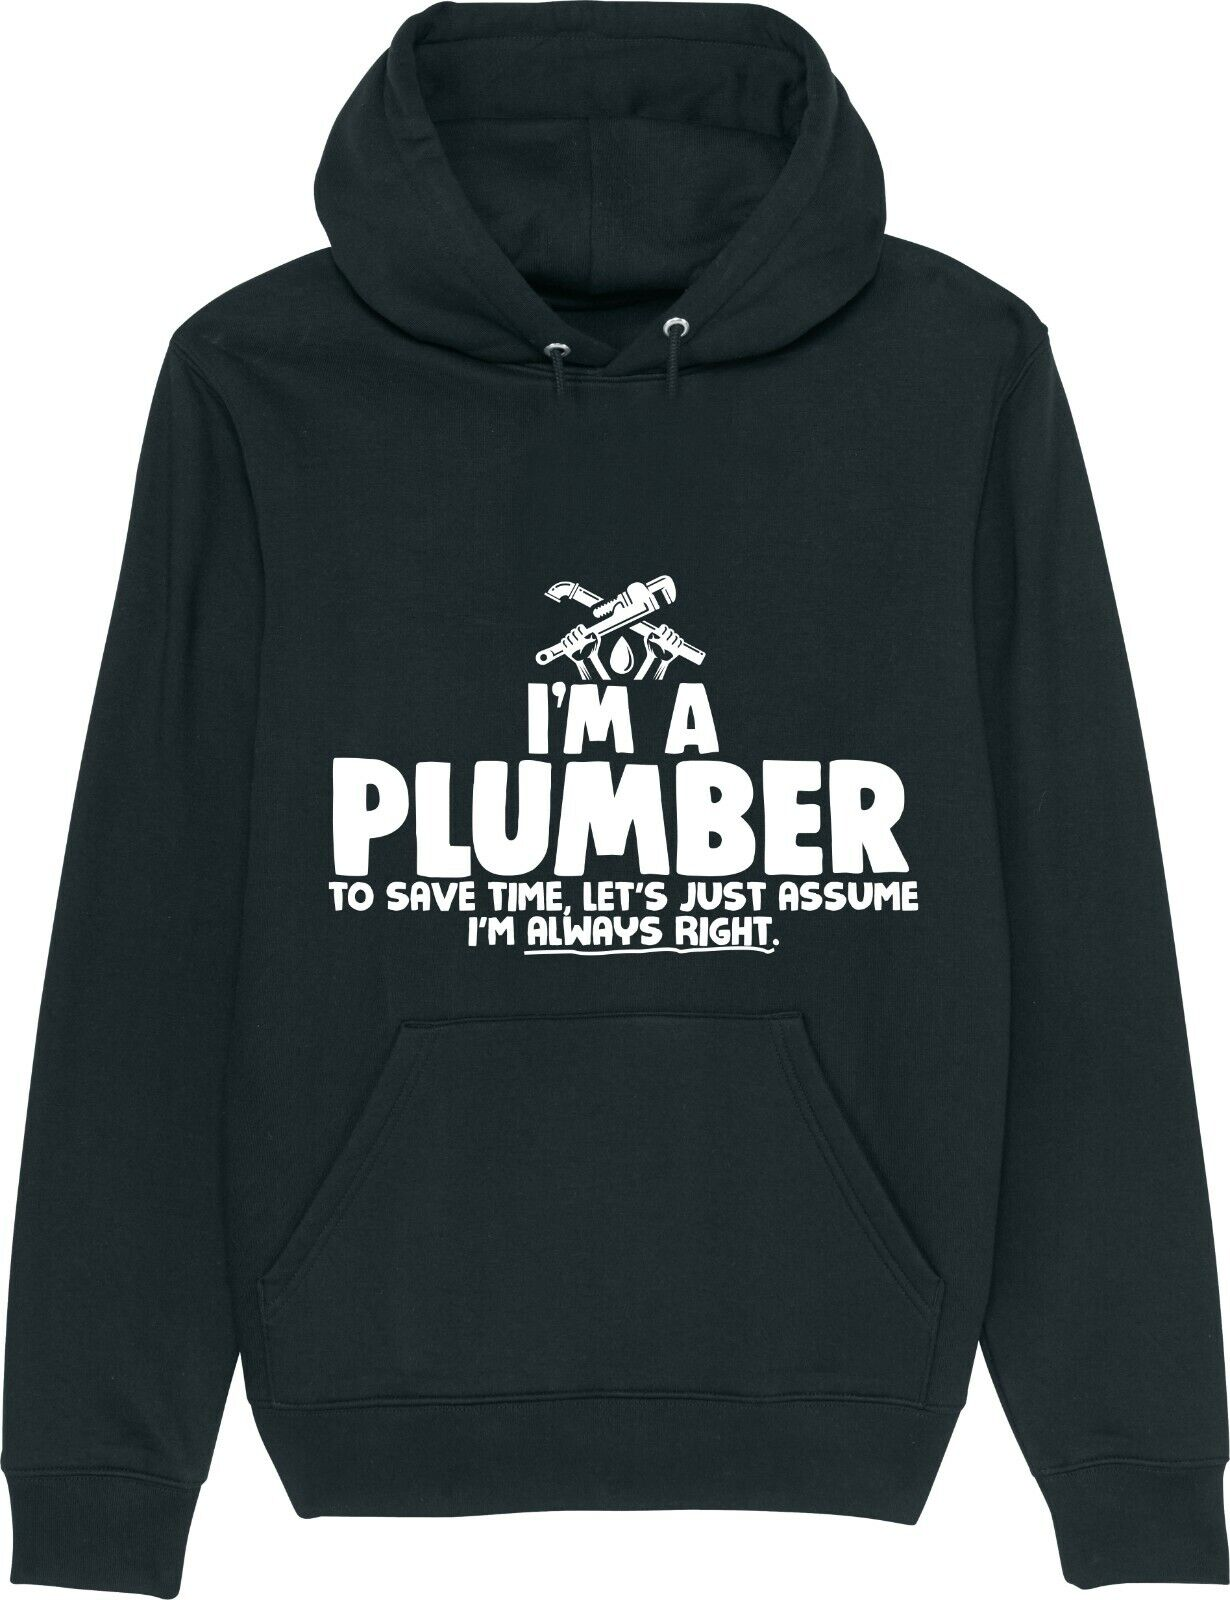 PLUMBER - I'm A Plumber - To Save Time I'm Always Right Plumbing Funny Hoodie